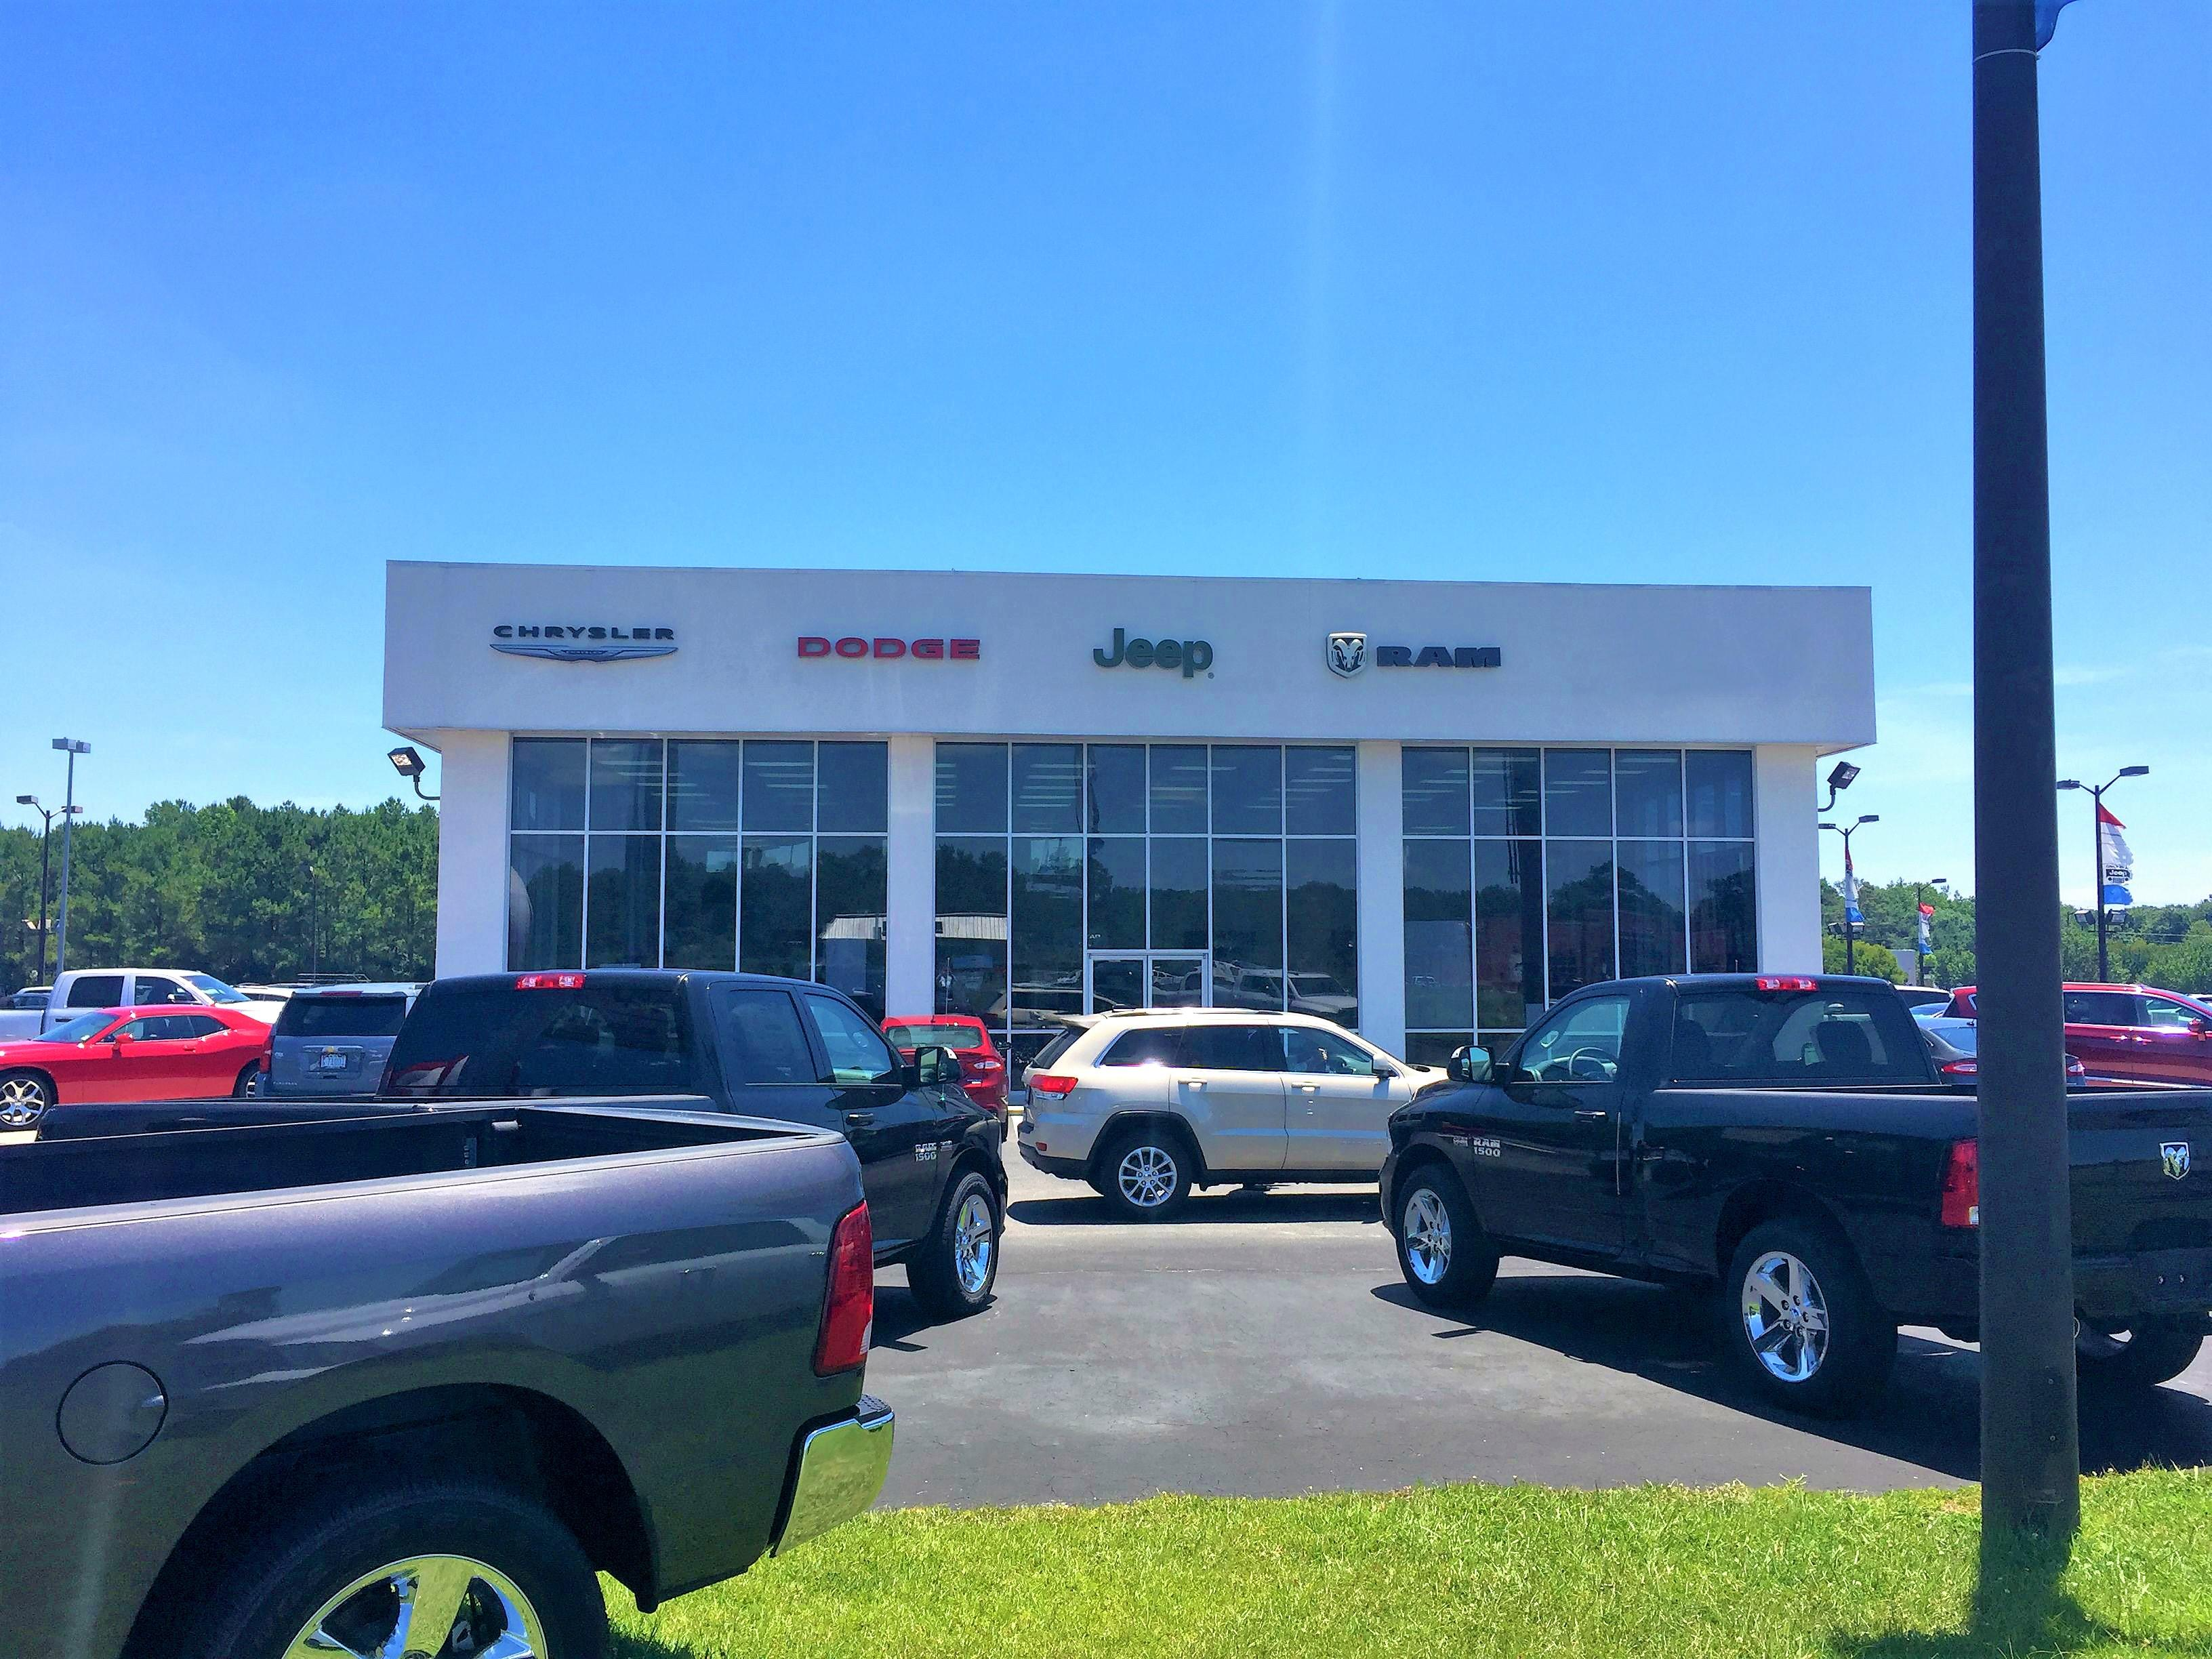 Victory Chrysler Dodge Jeep Ram In Shallotte Nc 28470